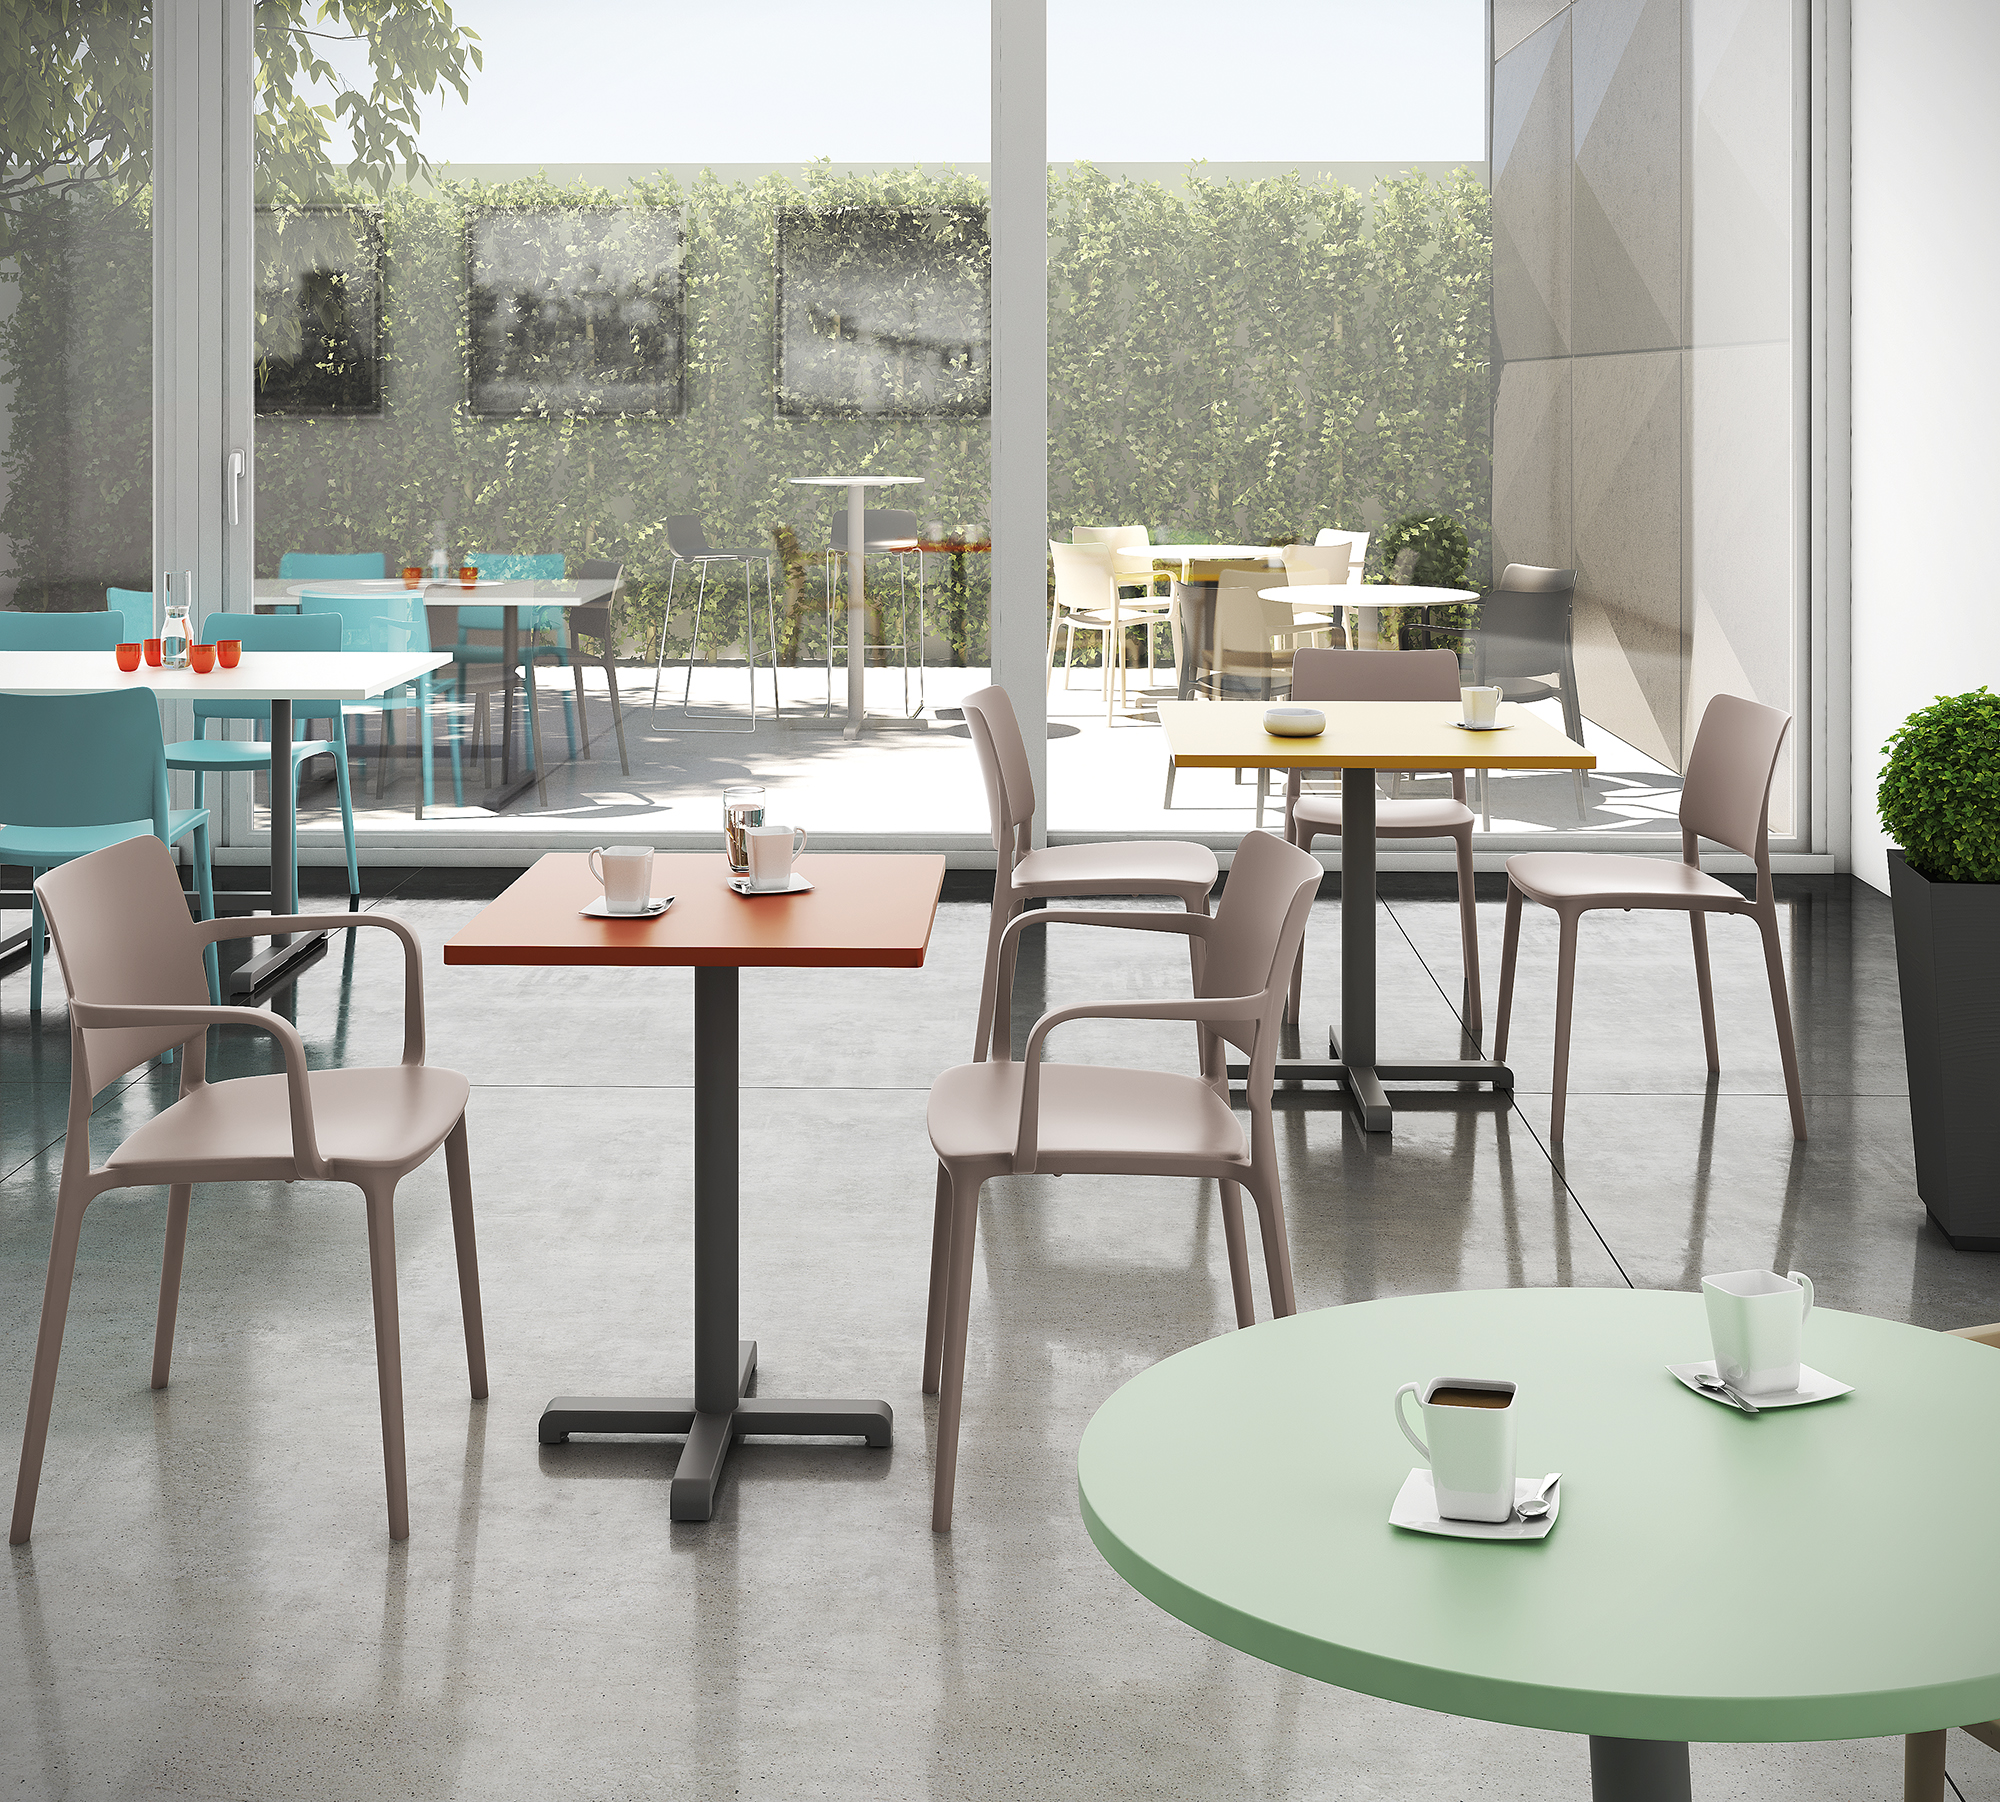 TABLES IN & OUDOOR 1 ambiance P212